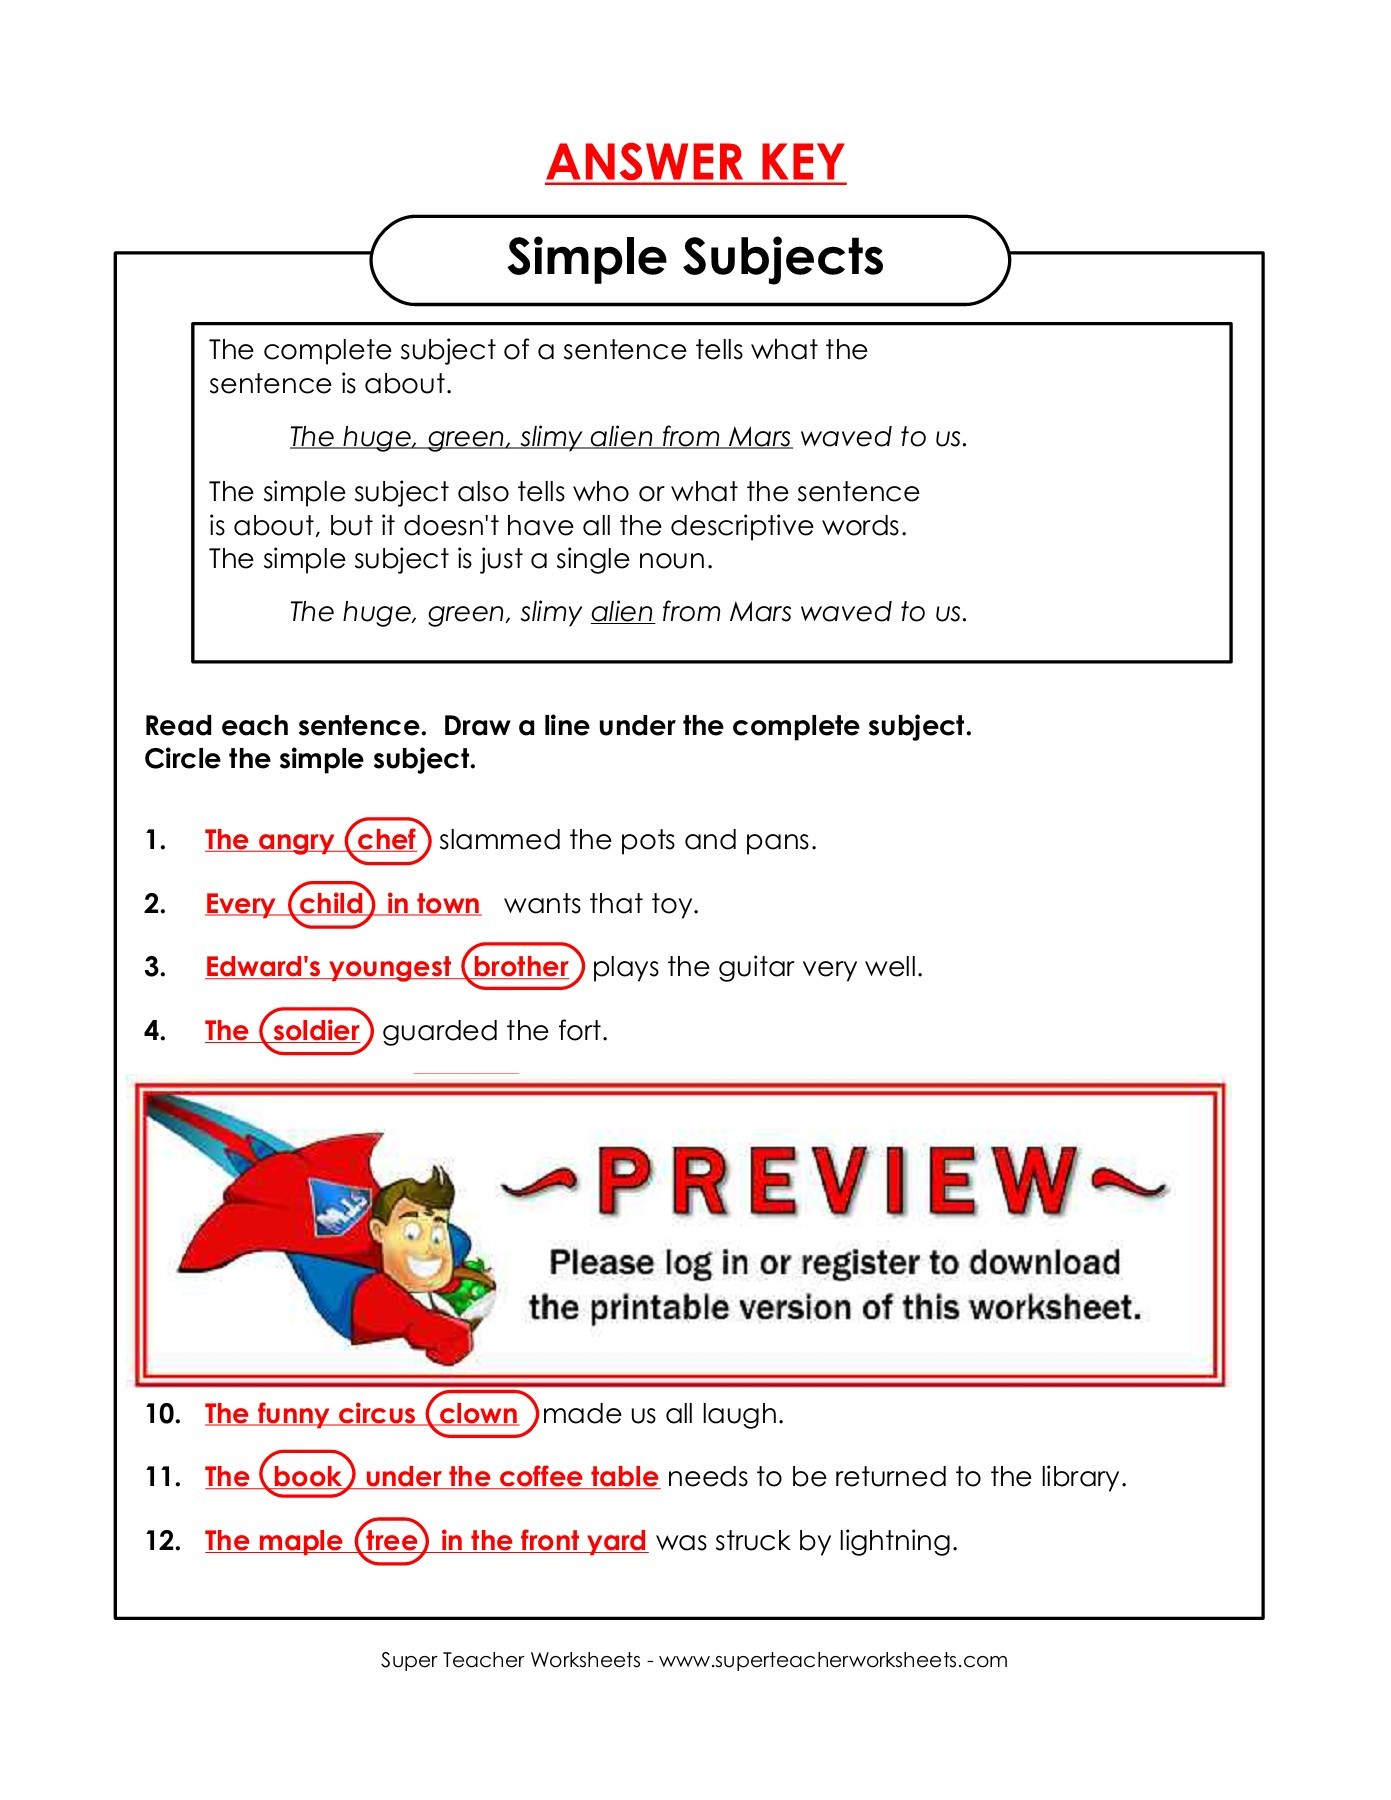 Super Teacher Worksheets Answer